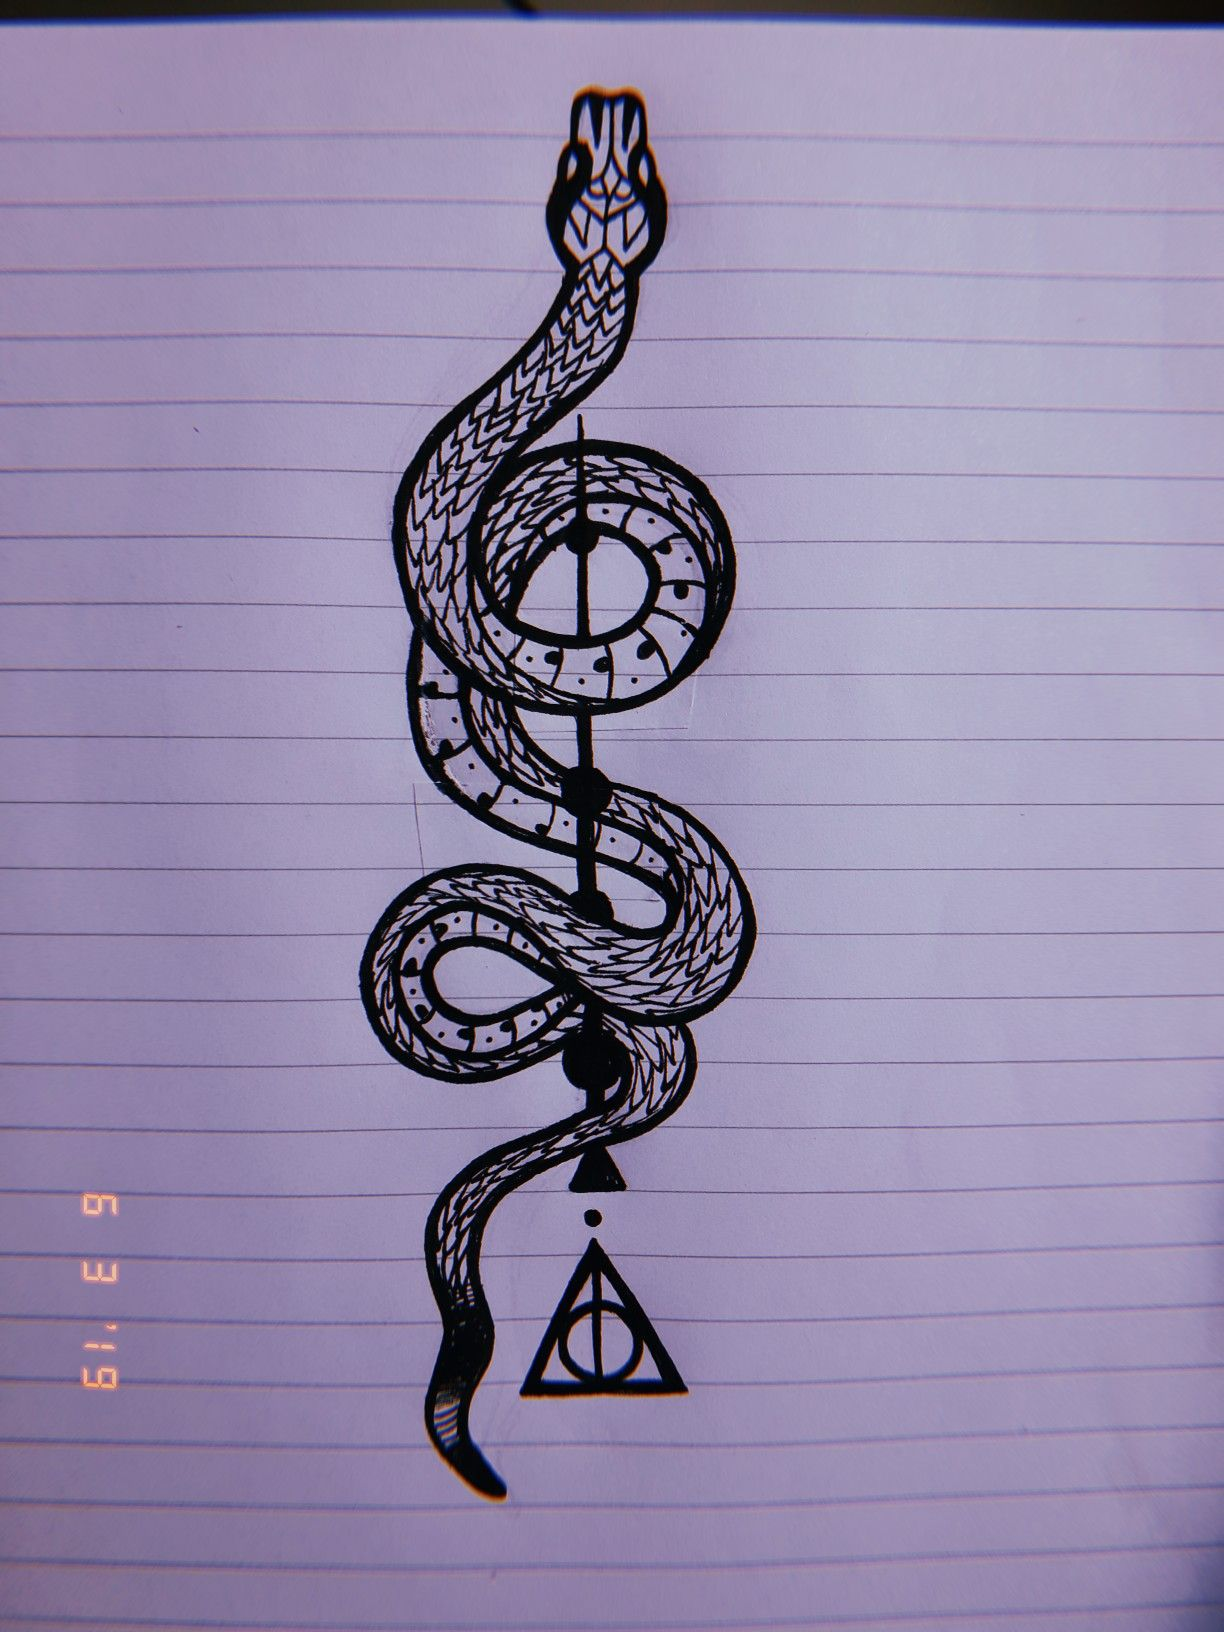 Snake Harrypotter Drawing Black Slytherin Deathlyhallows Harry Potter Tattoos Slytherin Tattoo Harry Potter Snake